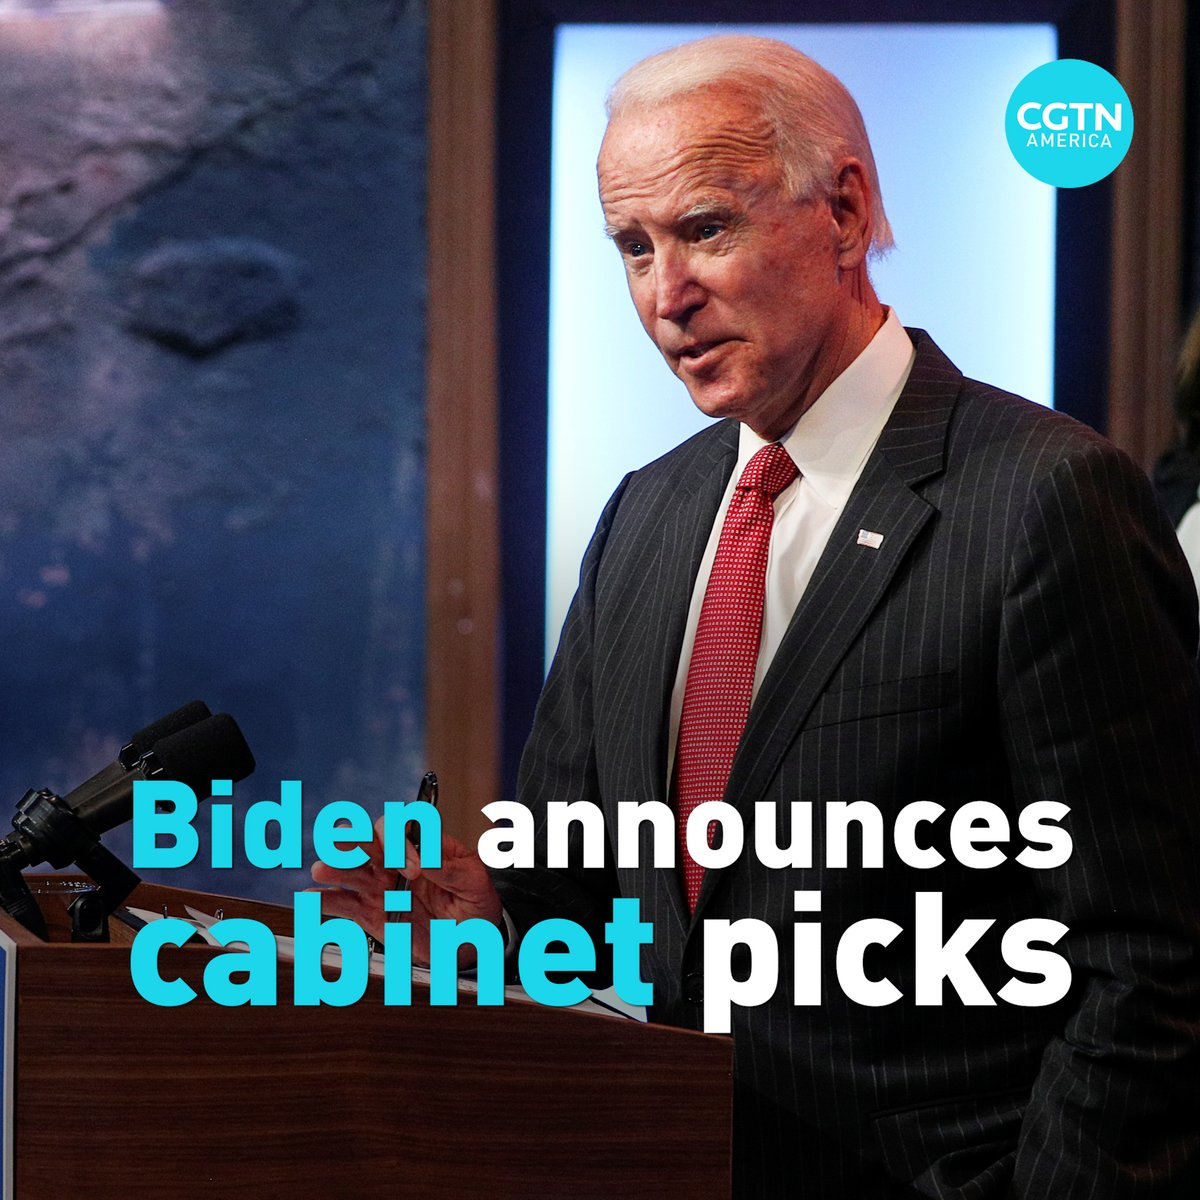 Joe Biden picked Cuban-American lawyer Alejandro Mayorkas to head the U.S. Department of Homeland Security, making it the first time a Latino or immigrant has led the agency. Former Sec. of State John Kerry to be Biden's climate czar and Antony Blinken to be secretary of state.